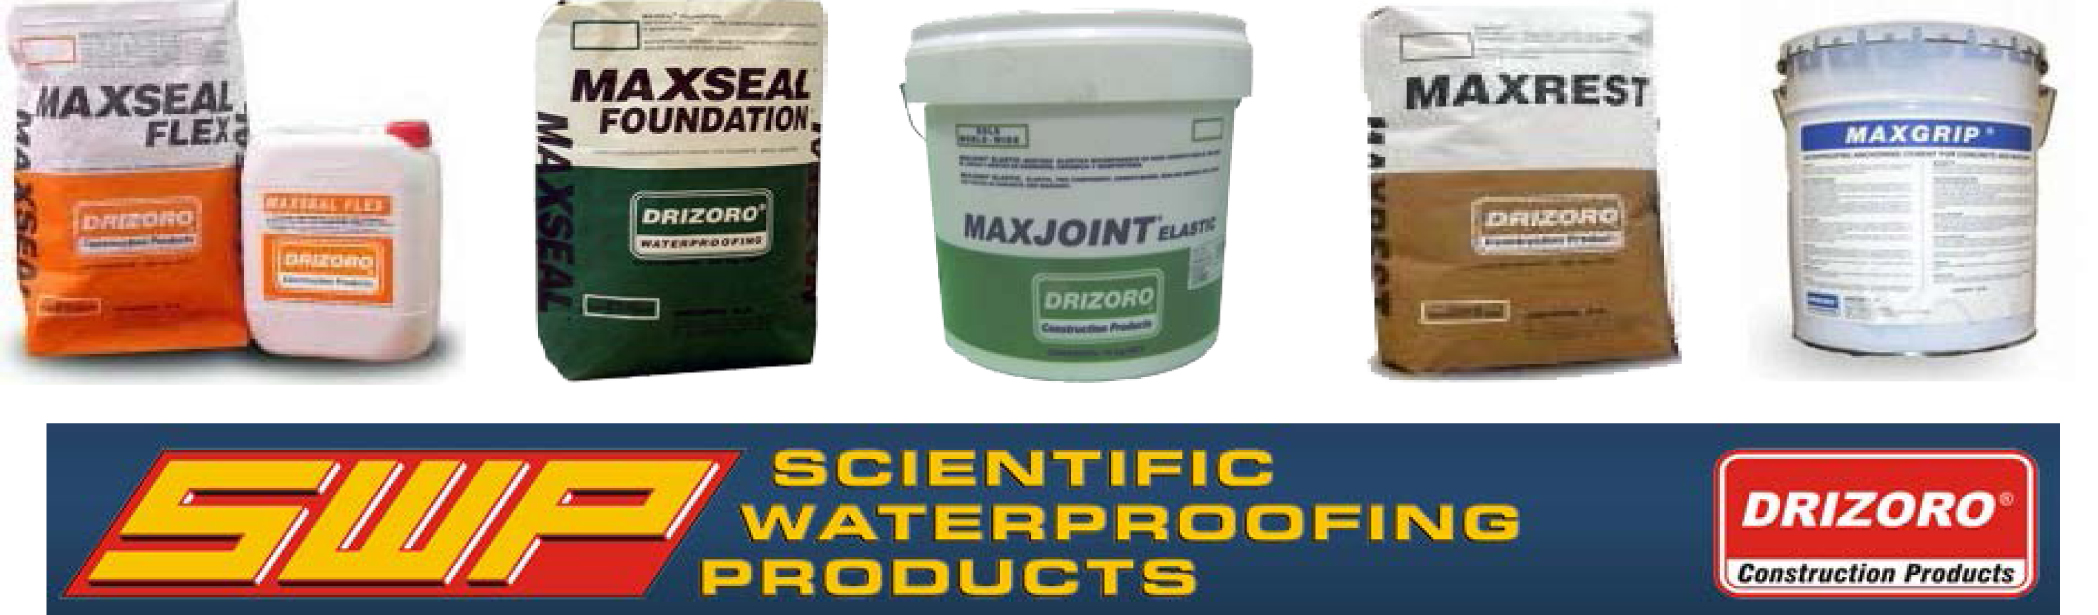 MAXSEAL FLEX - Product | ODS